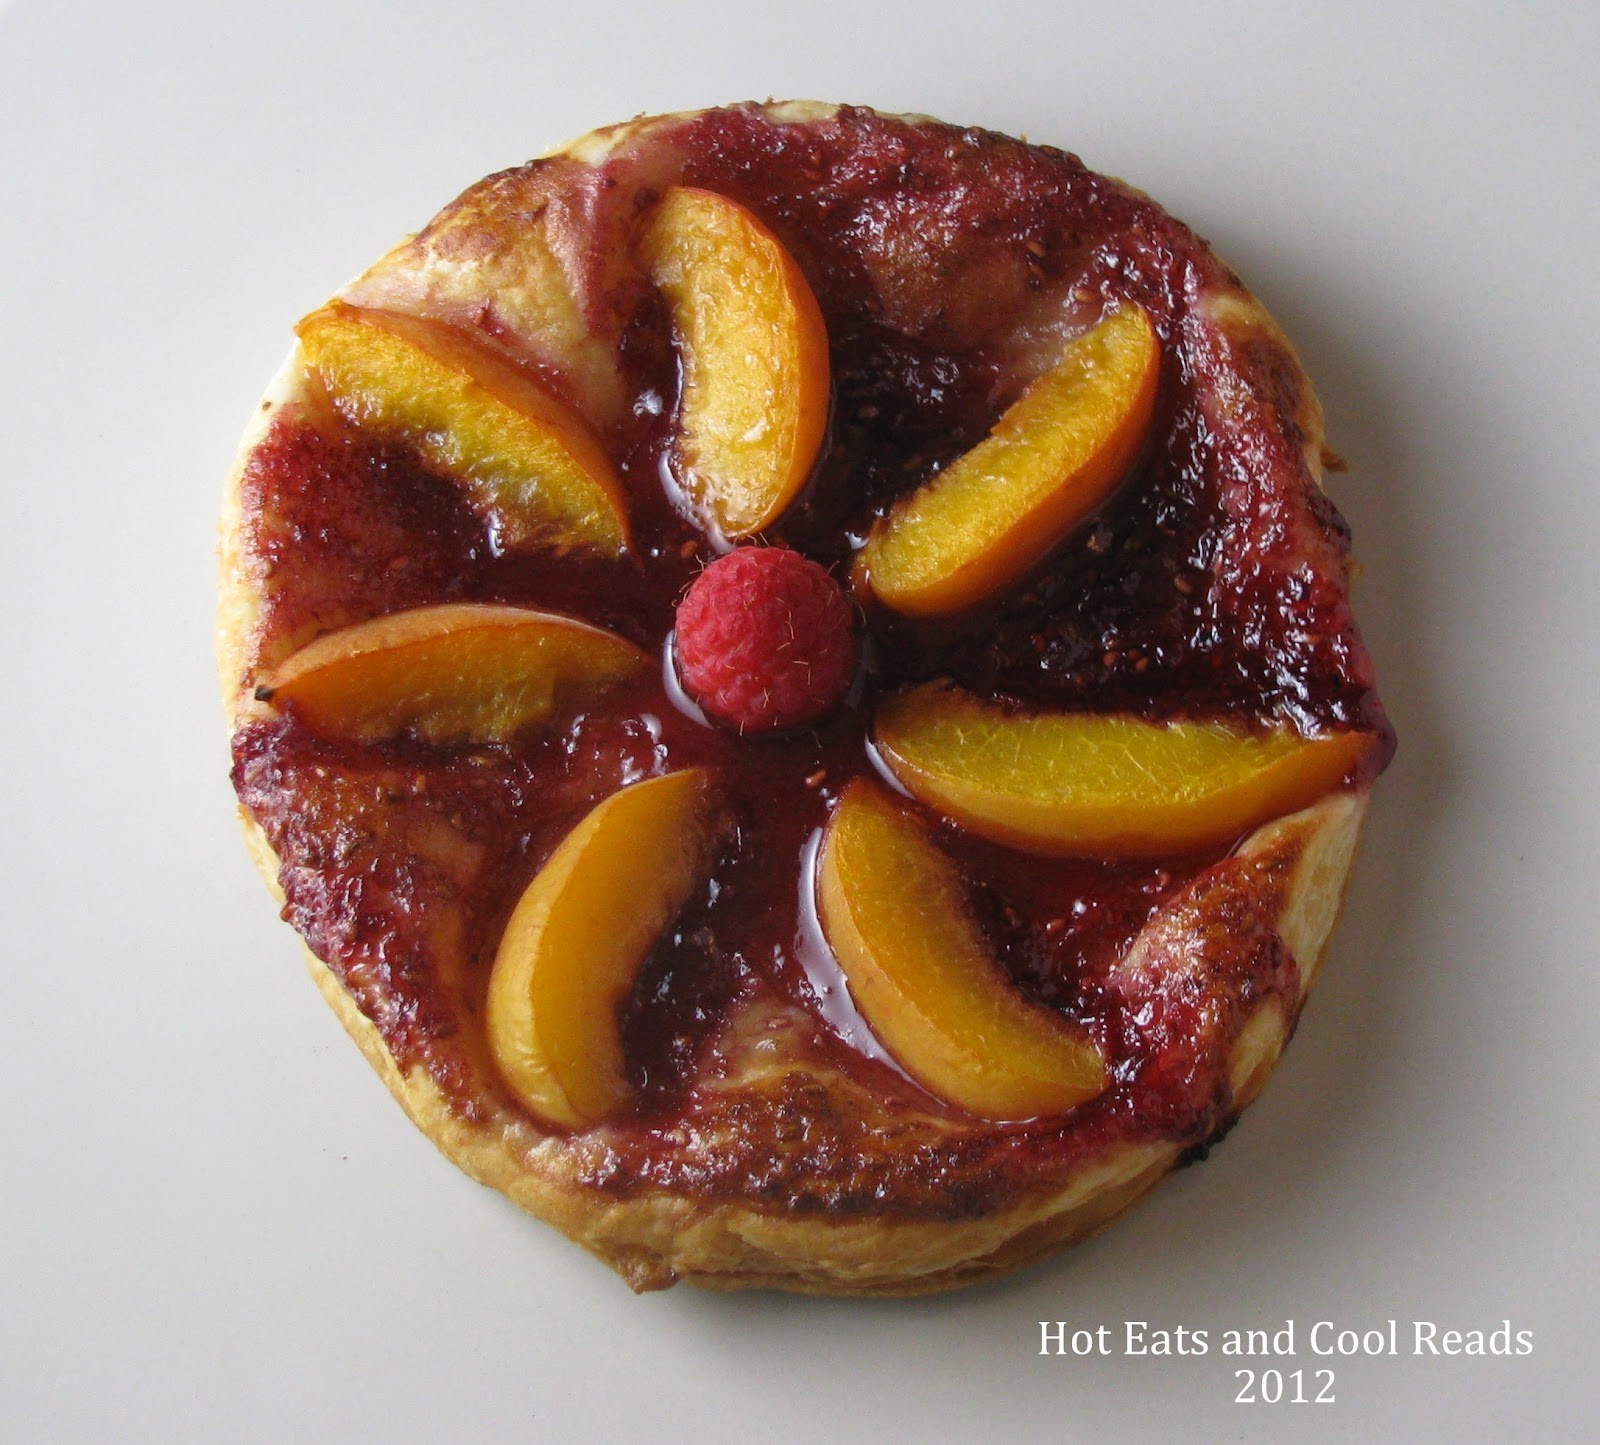 Hot eats and cool reads apricot fruit tart dessert recipe from the jun 18 2012 forumfinder Gallery